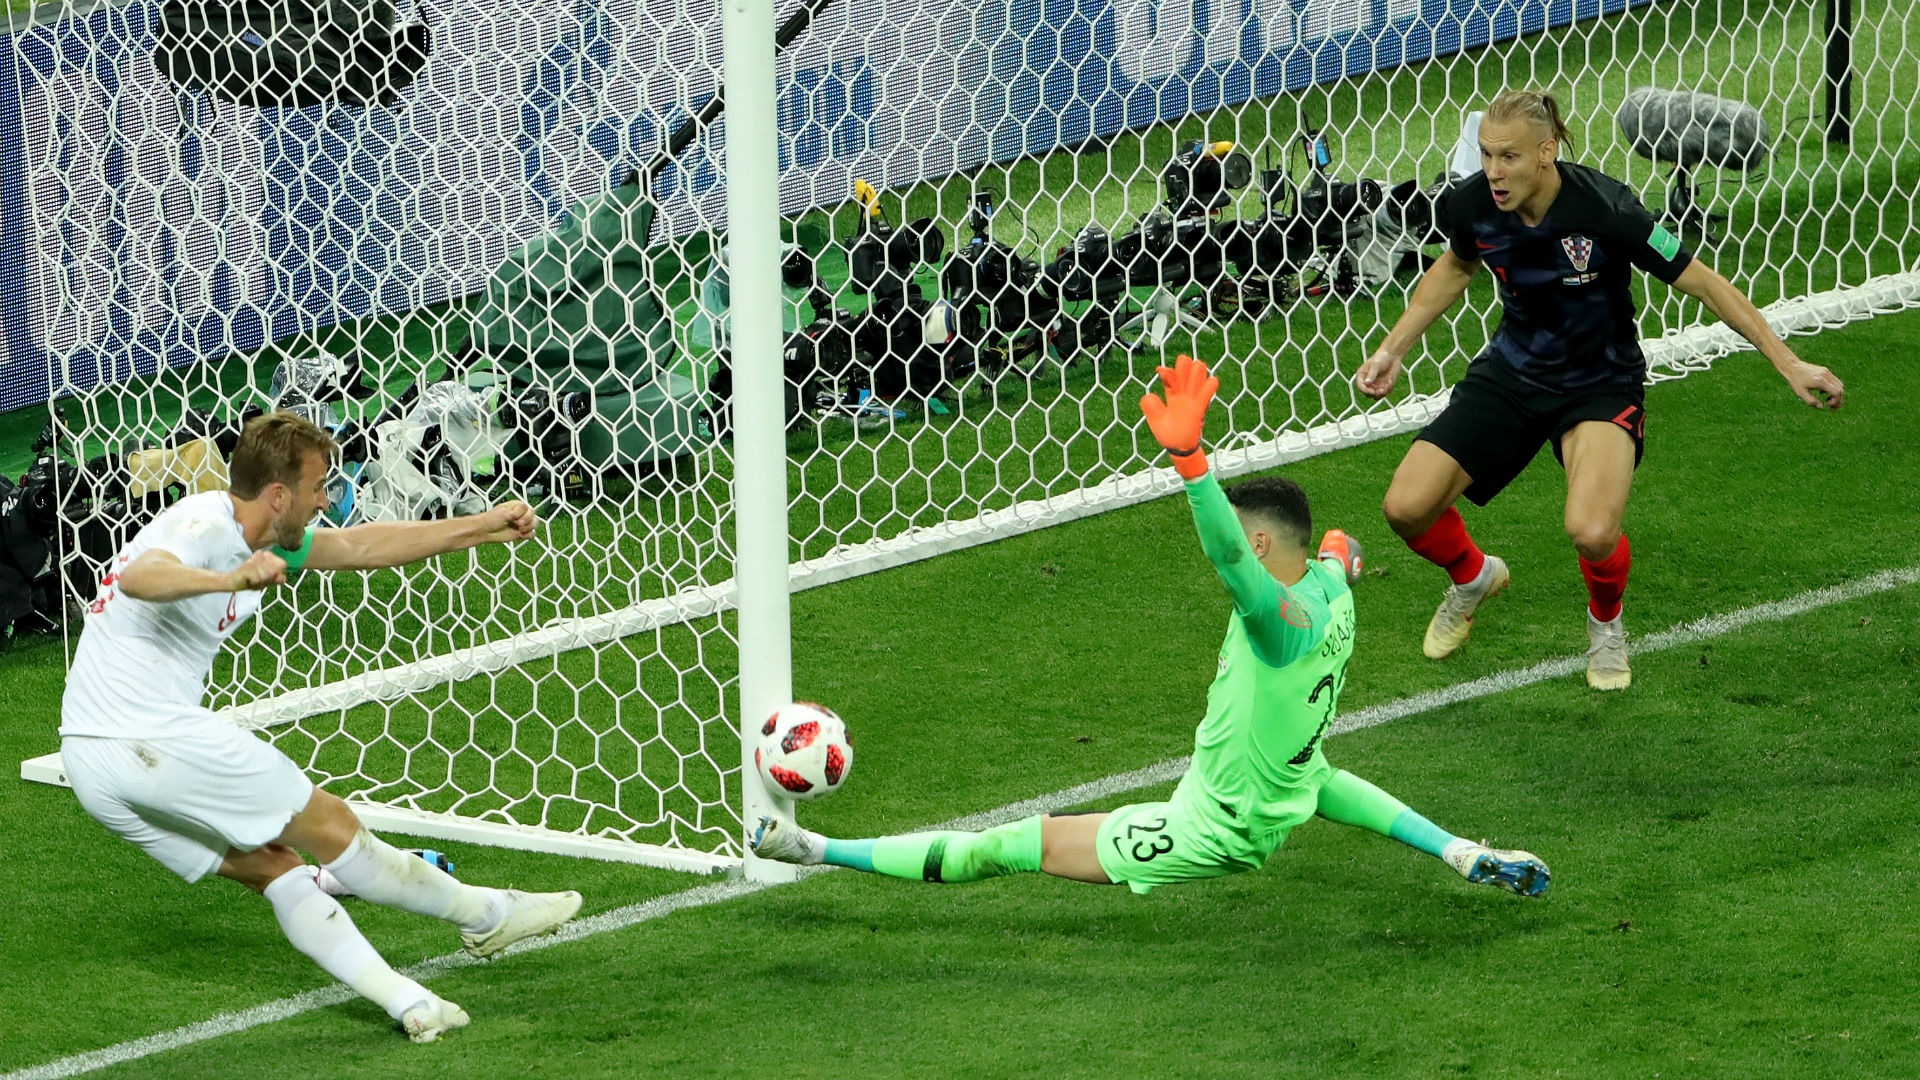 croatia england - harry kane danijel subasic domagoj vida - world cup - 11072018